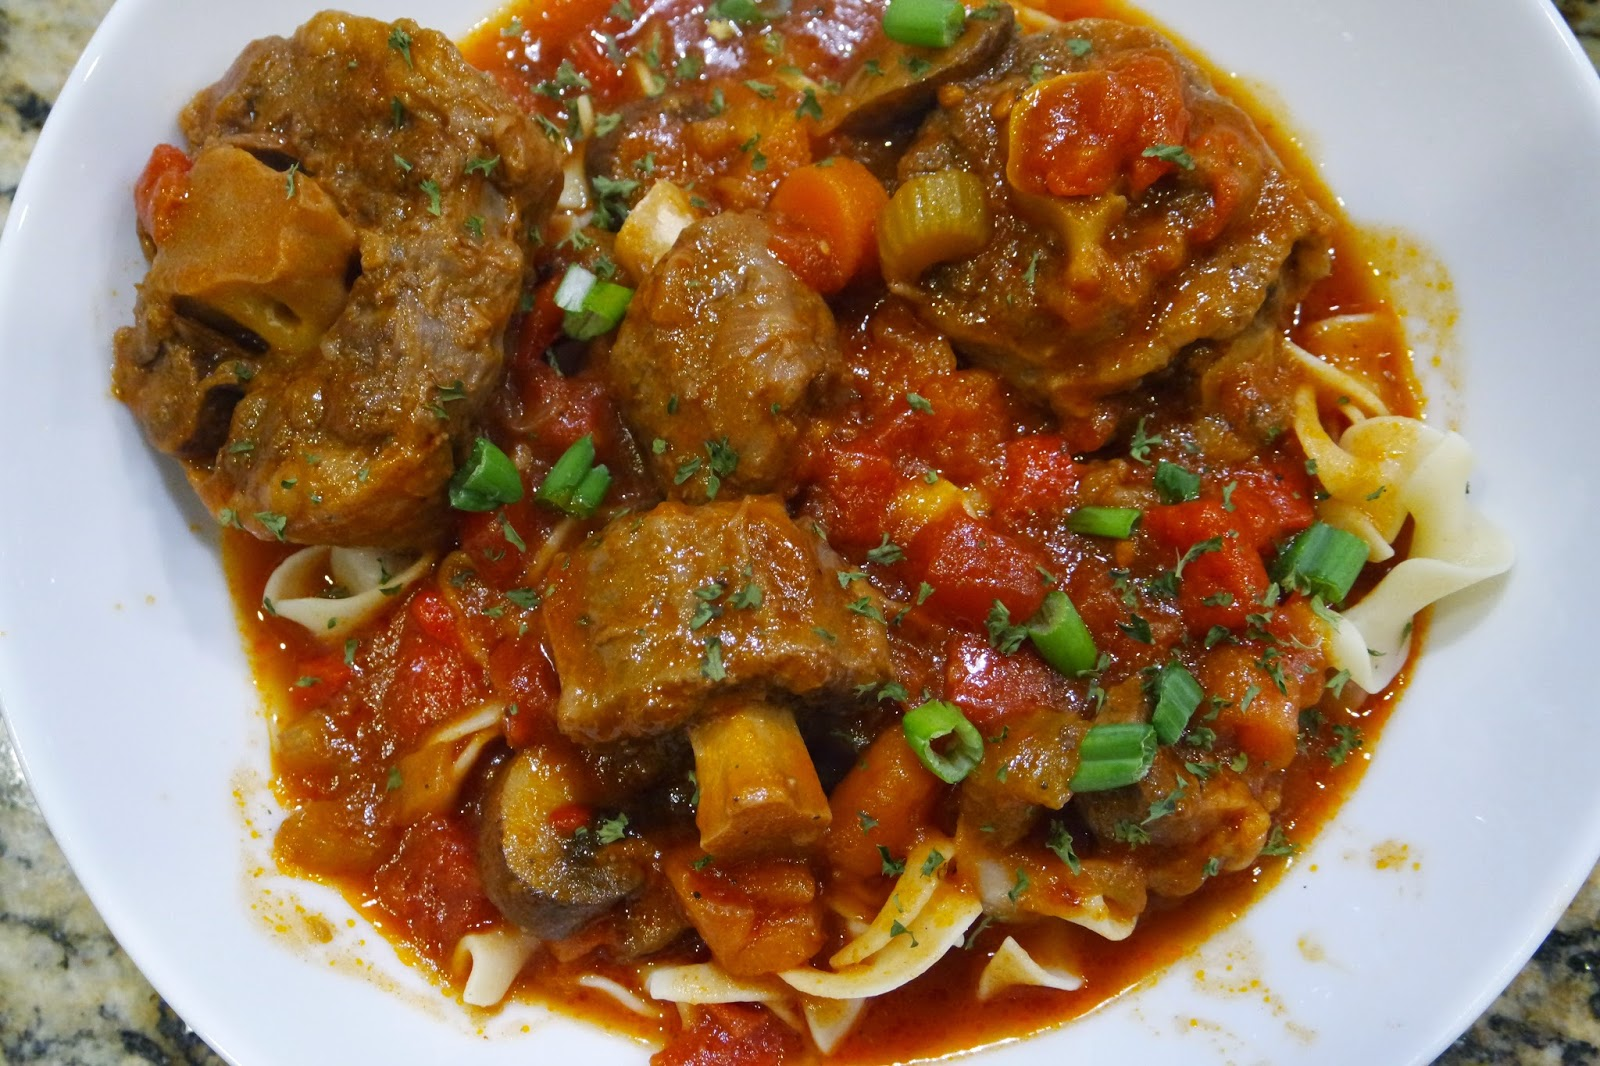 If you've never had beef stew Irish-style, now is the time. Get the recipe from Damn Delicious.